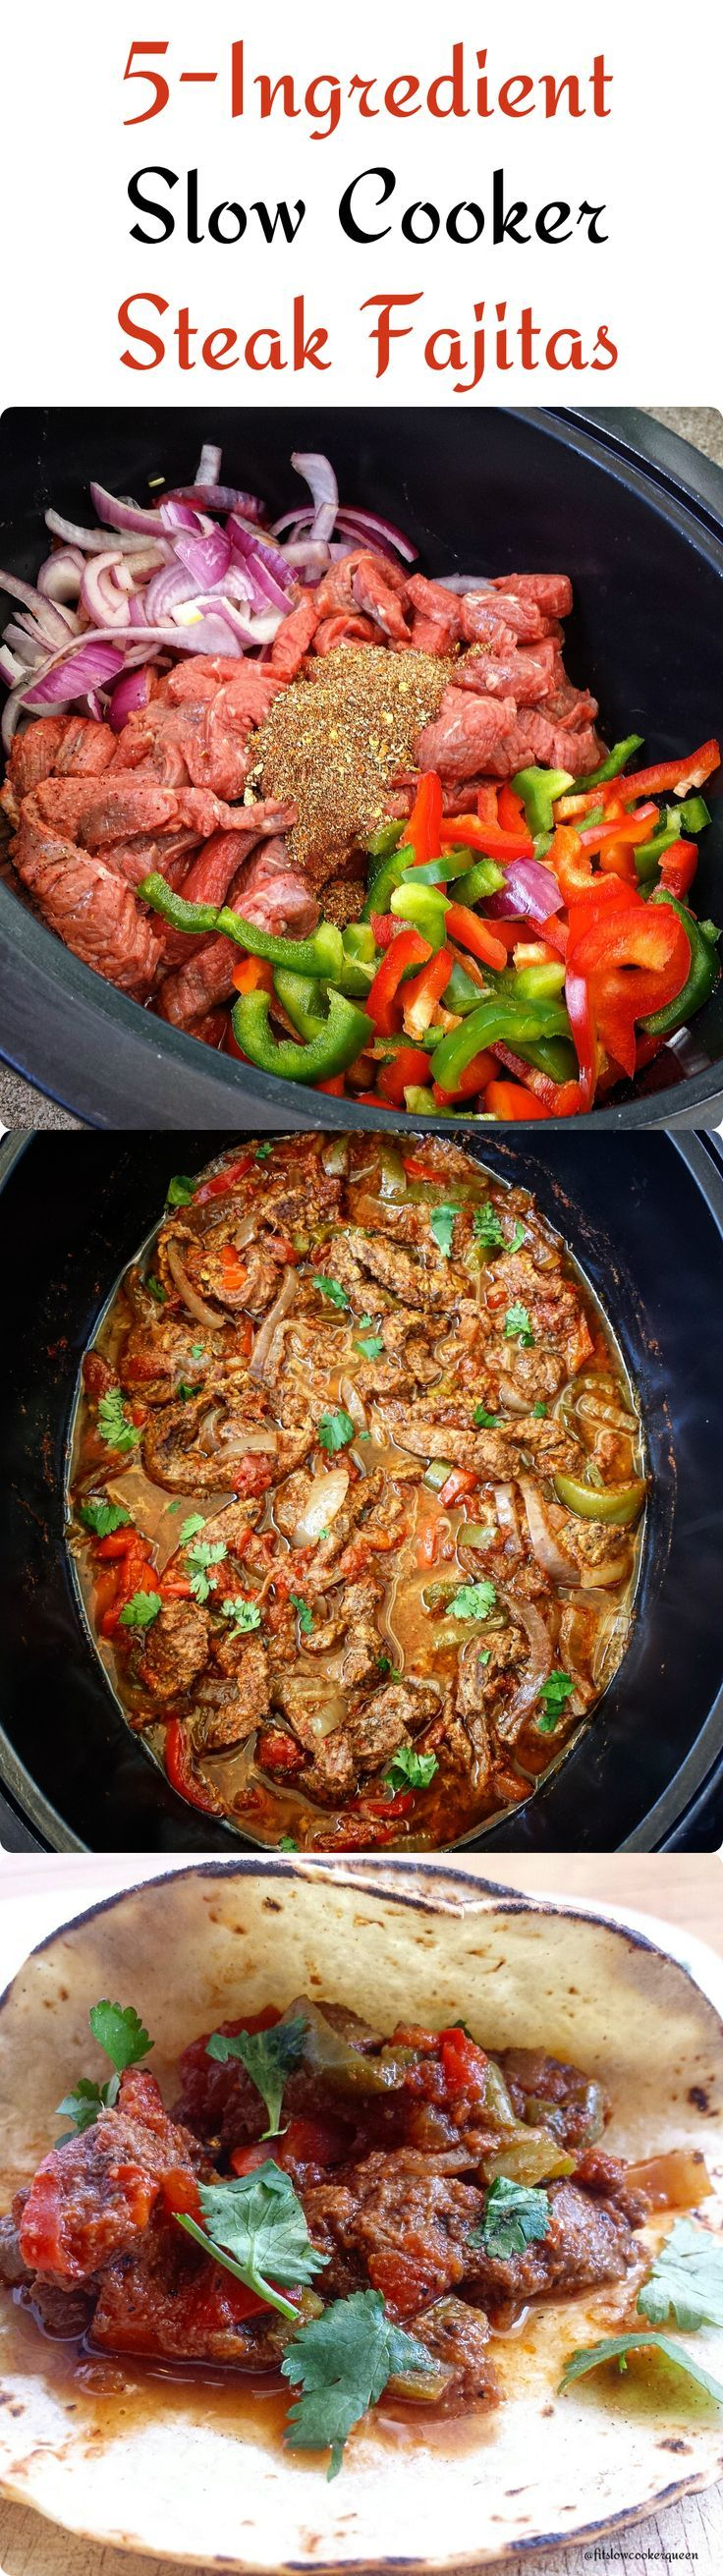 5-Zutaten Slow Cooker / Instant Pot Steak Fajitas (Low-Carb, Paleo, Whole30 #crockpotmeals